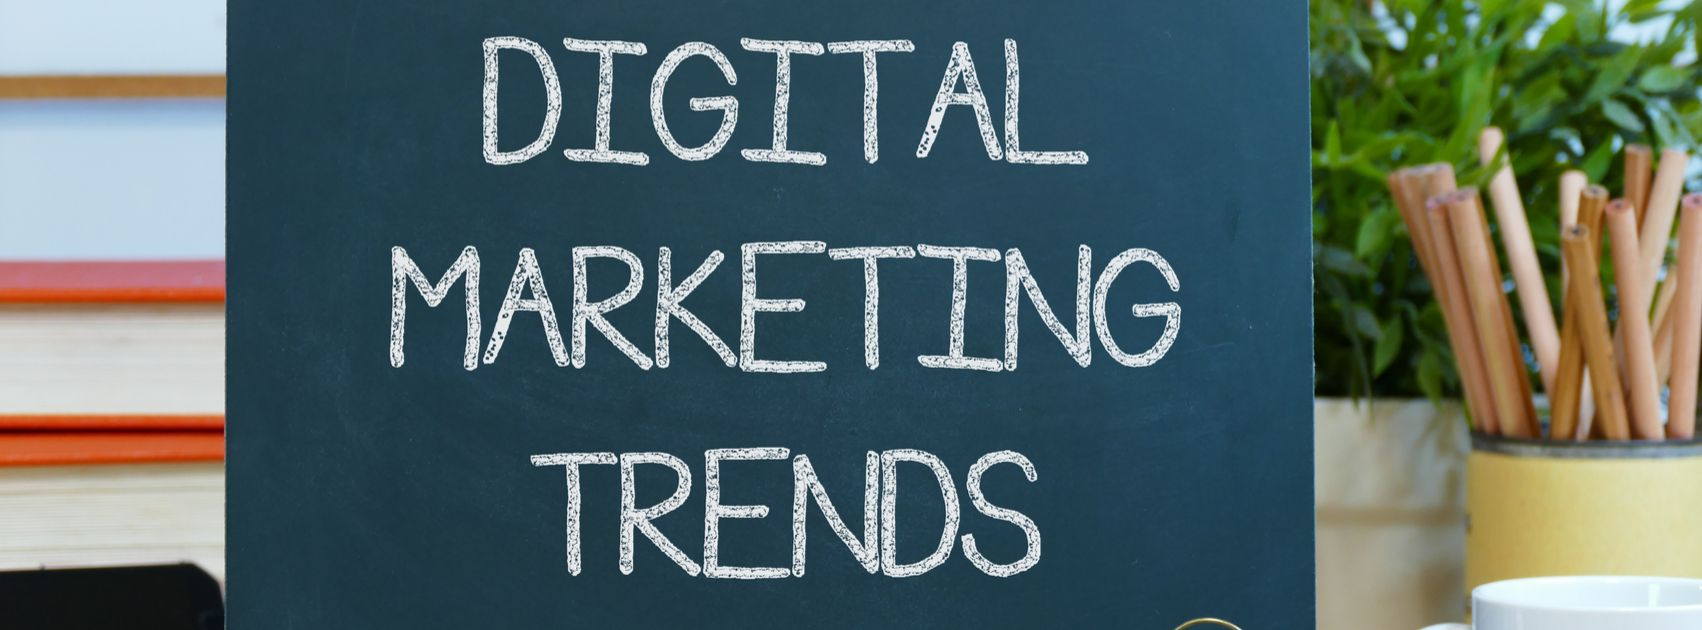 digital marketing trends - message text on a blackboard with pencils coffee cup and mobile phone.